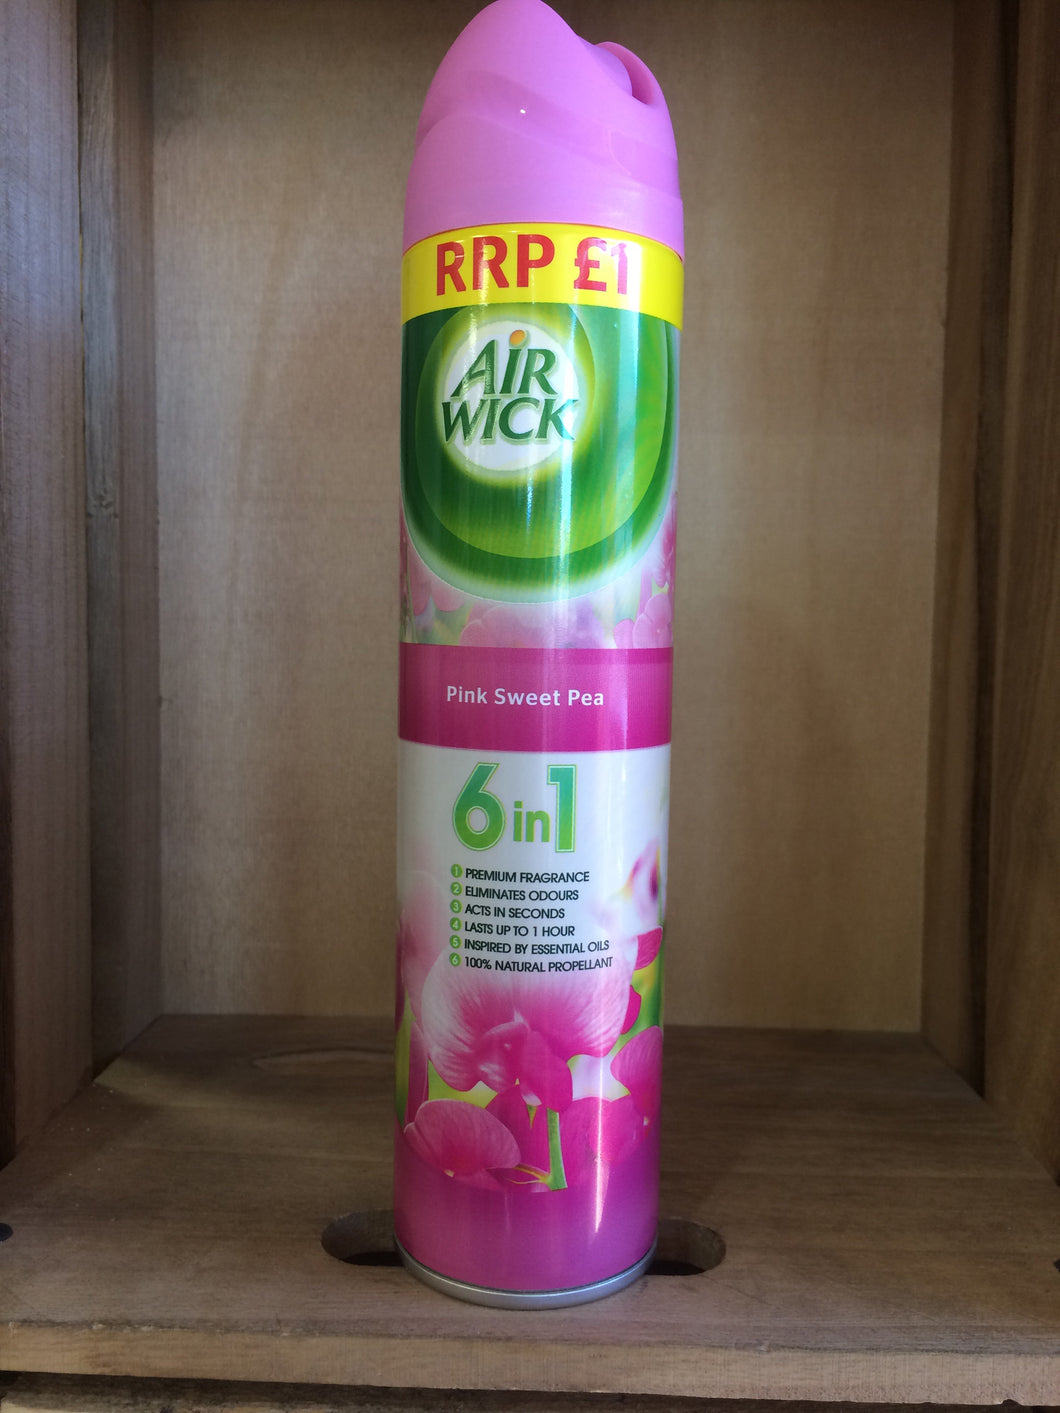 Airwick Pink Sweet Pea 6 in 1 Air Freshner 240ml